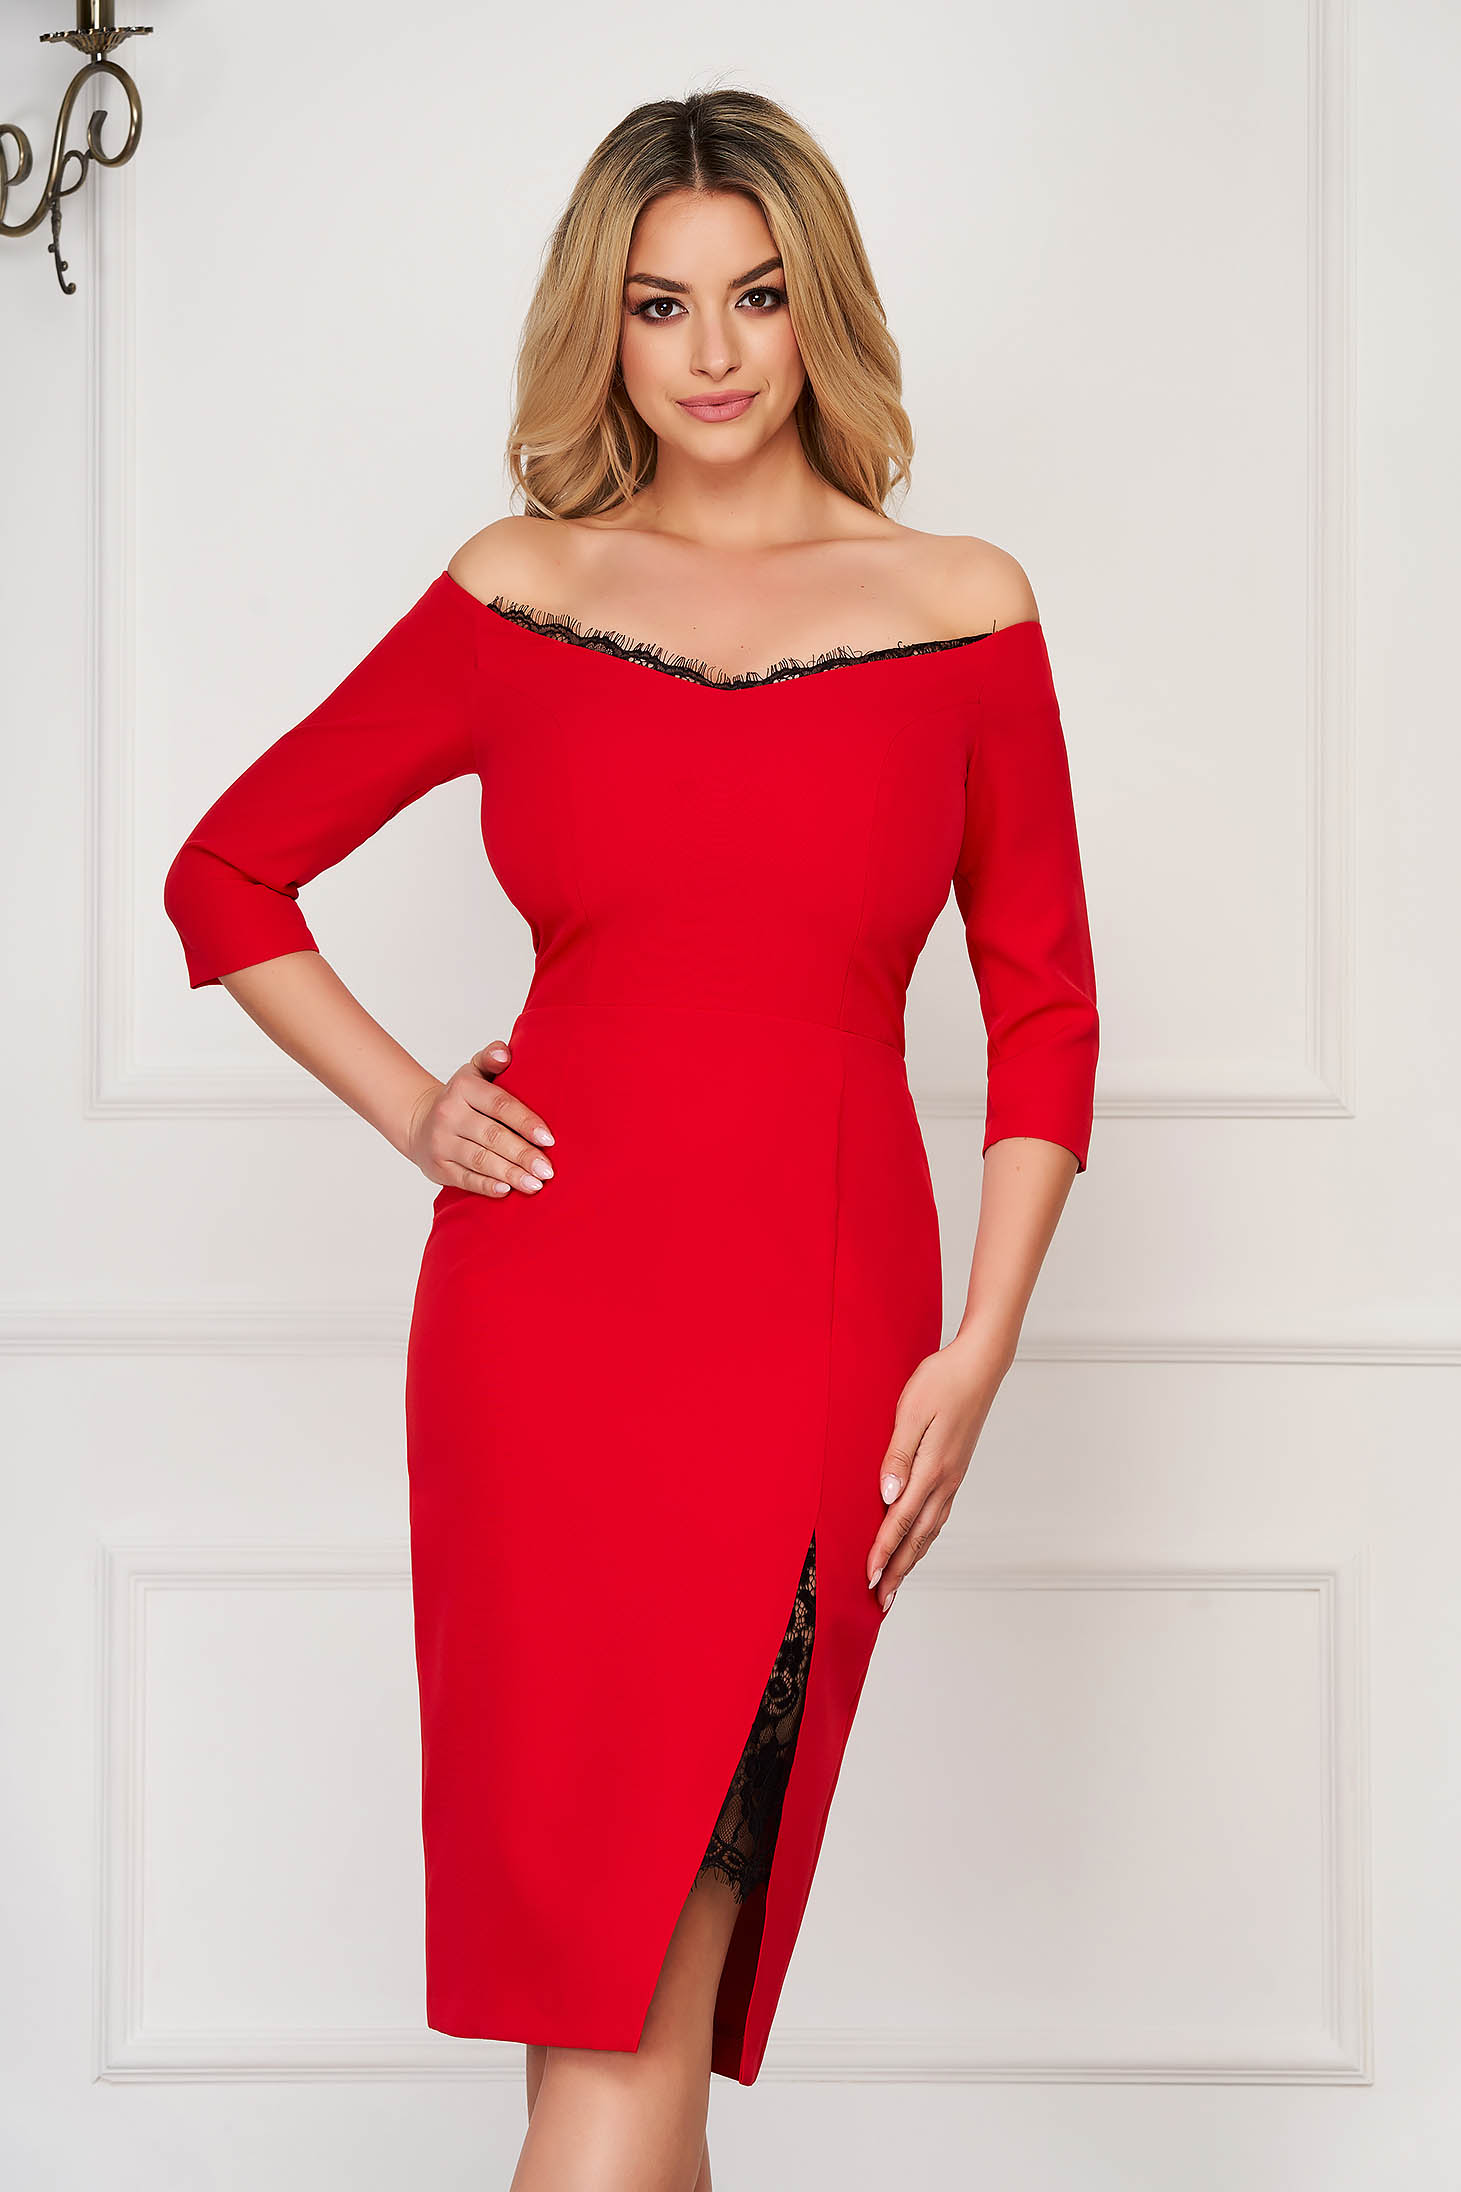 StarShinerS red dress elegant midi pencil cloth thin fabric with 3/4 sleeves naked shoulders with lace details